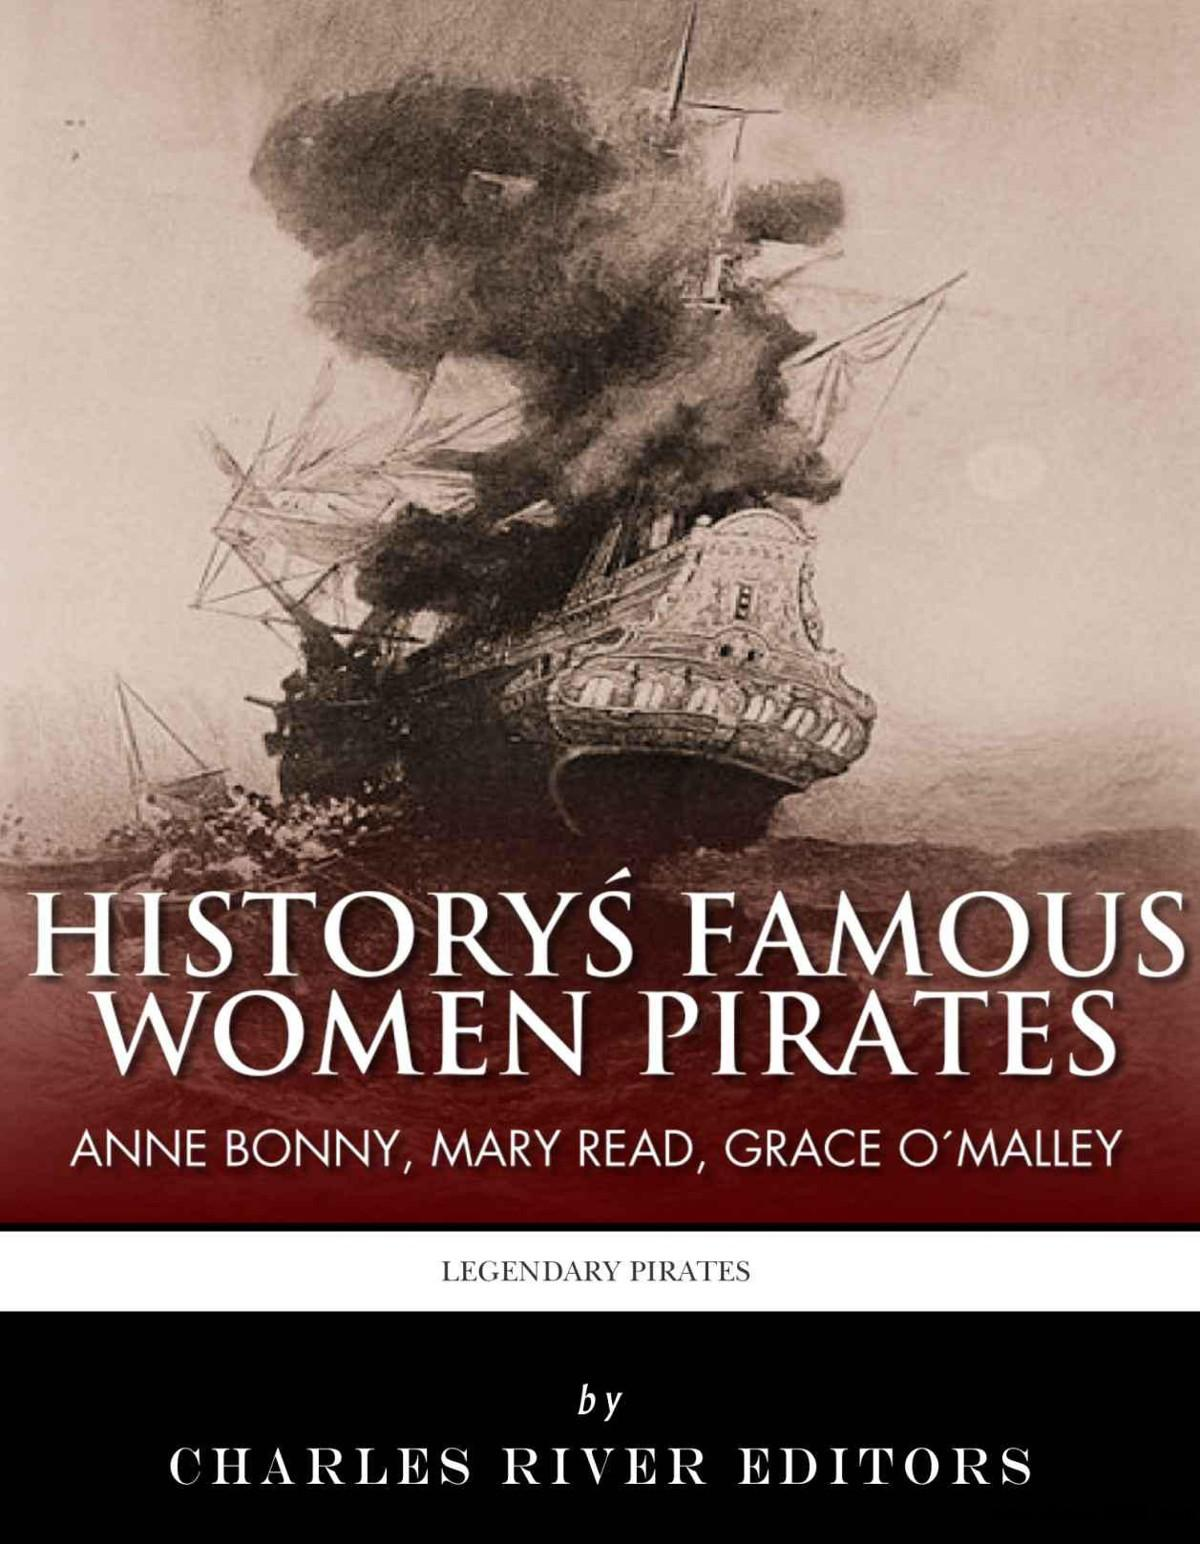 History's Famous Women Pirates: Grace O'Malley, Anne Bonny and Mary Read free download